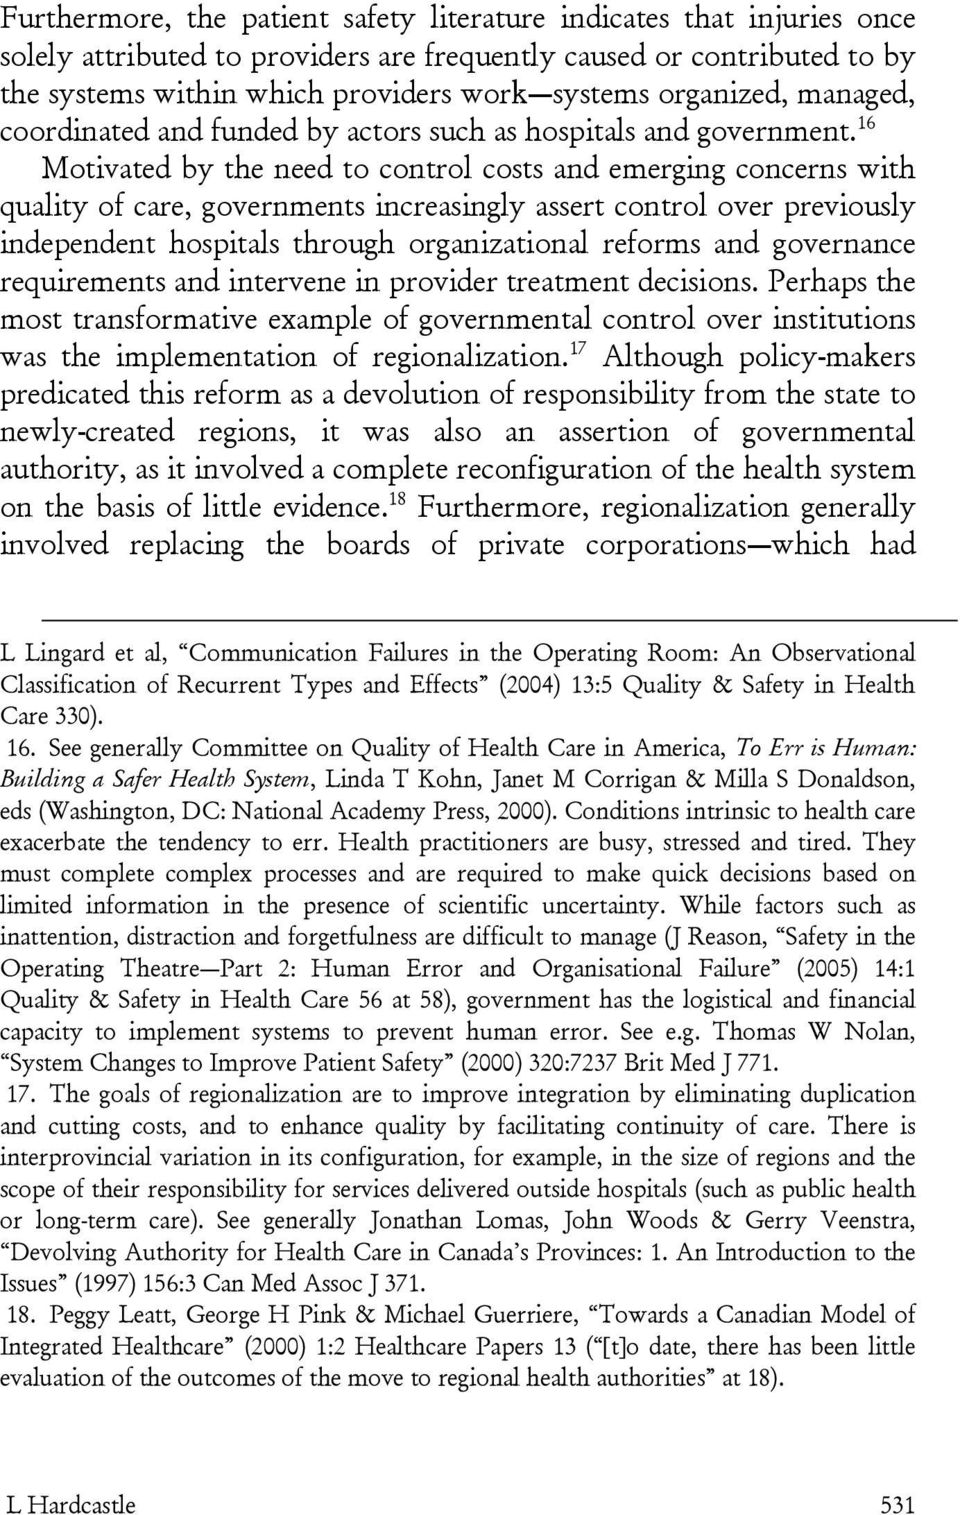 16 Motivated by the need to control costs and emerging concerns with quality of care, governments increasingly assert control over previously independent hospitals through organizational reforms and